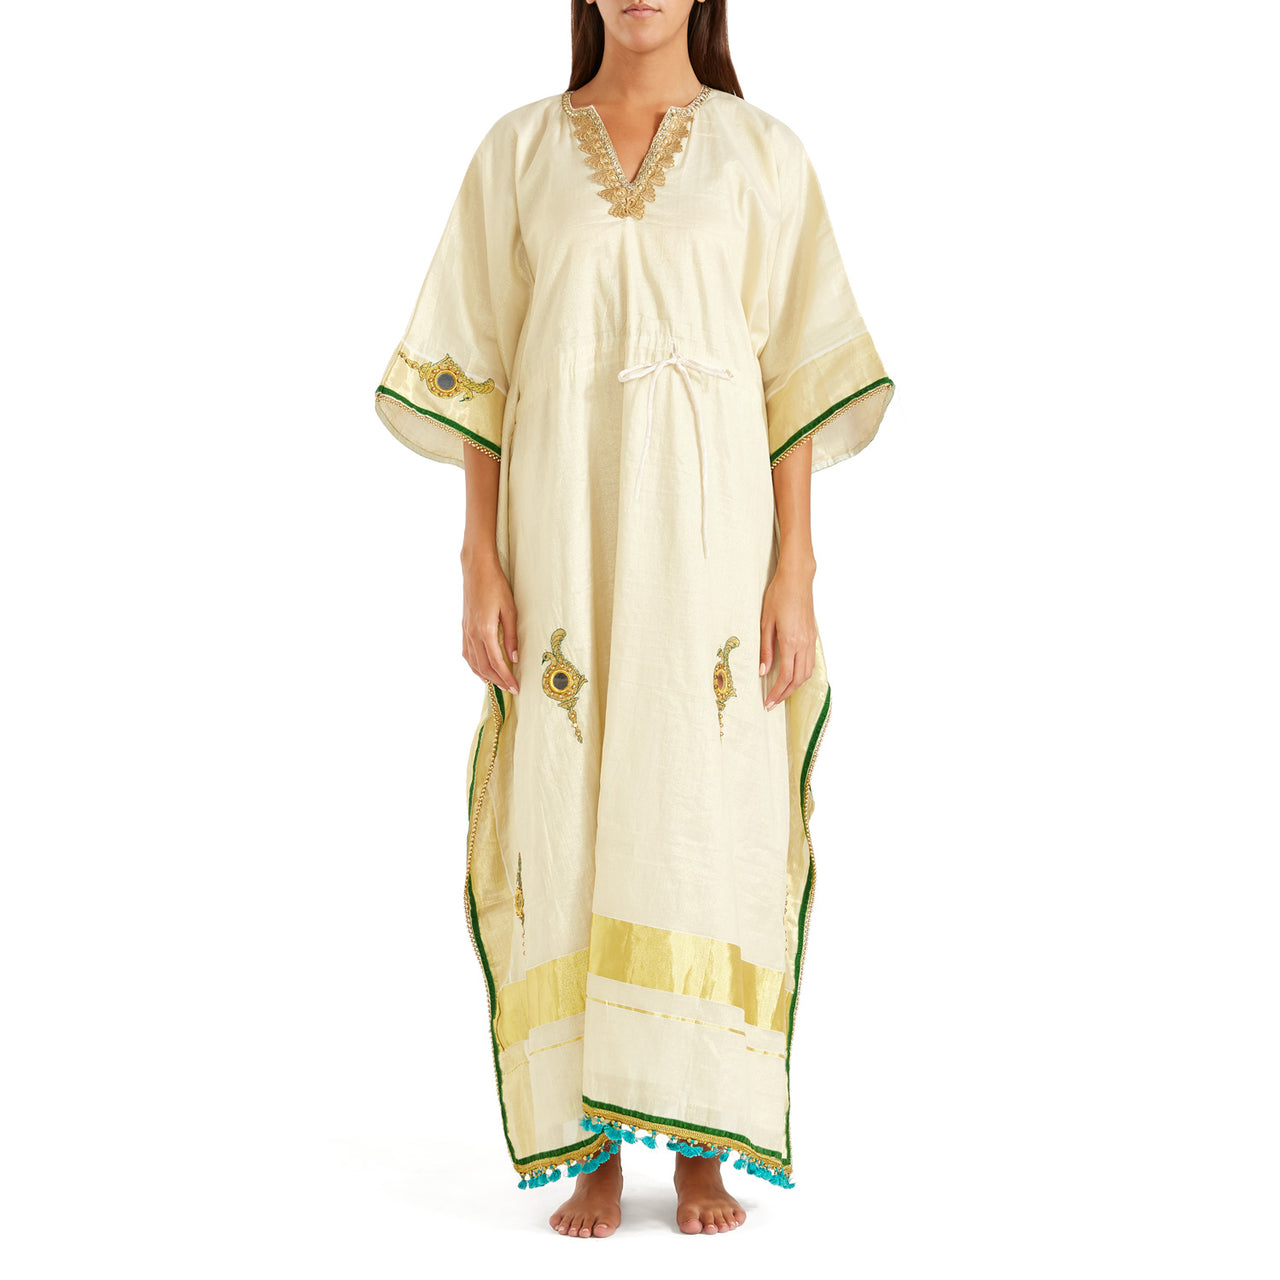 The Kerala Kaftan